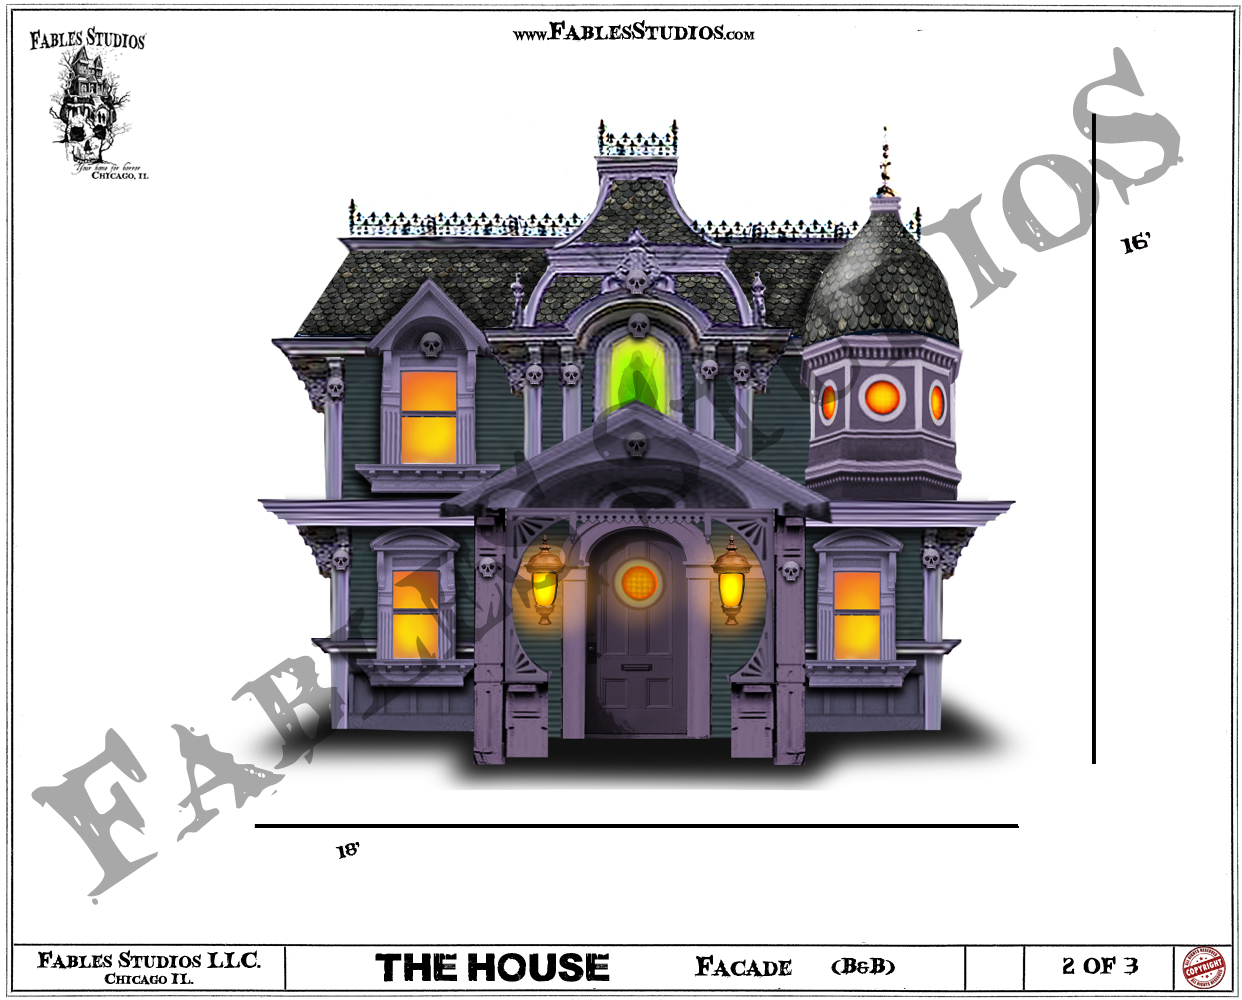 Haunted House Facade (Concept Art)